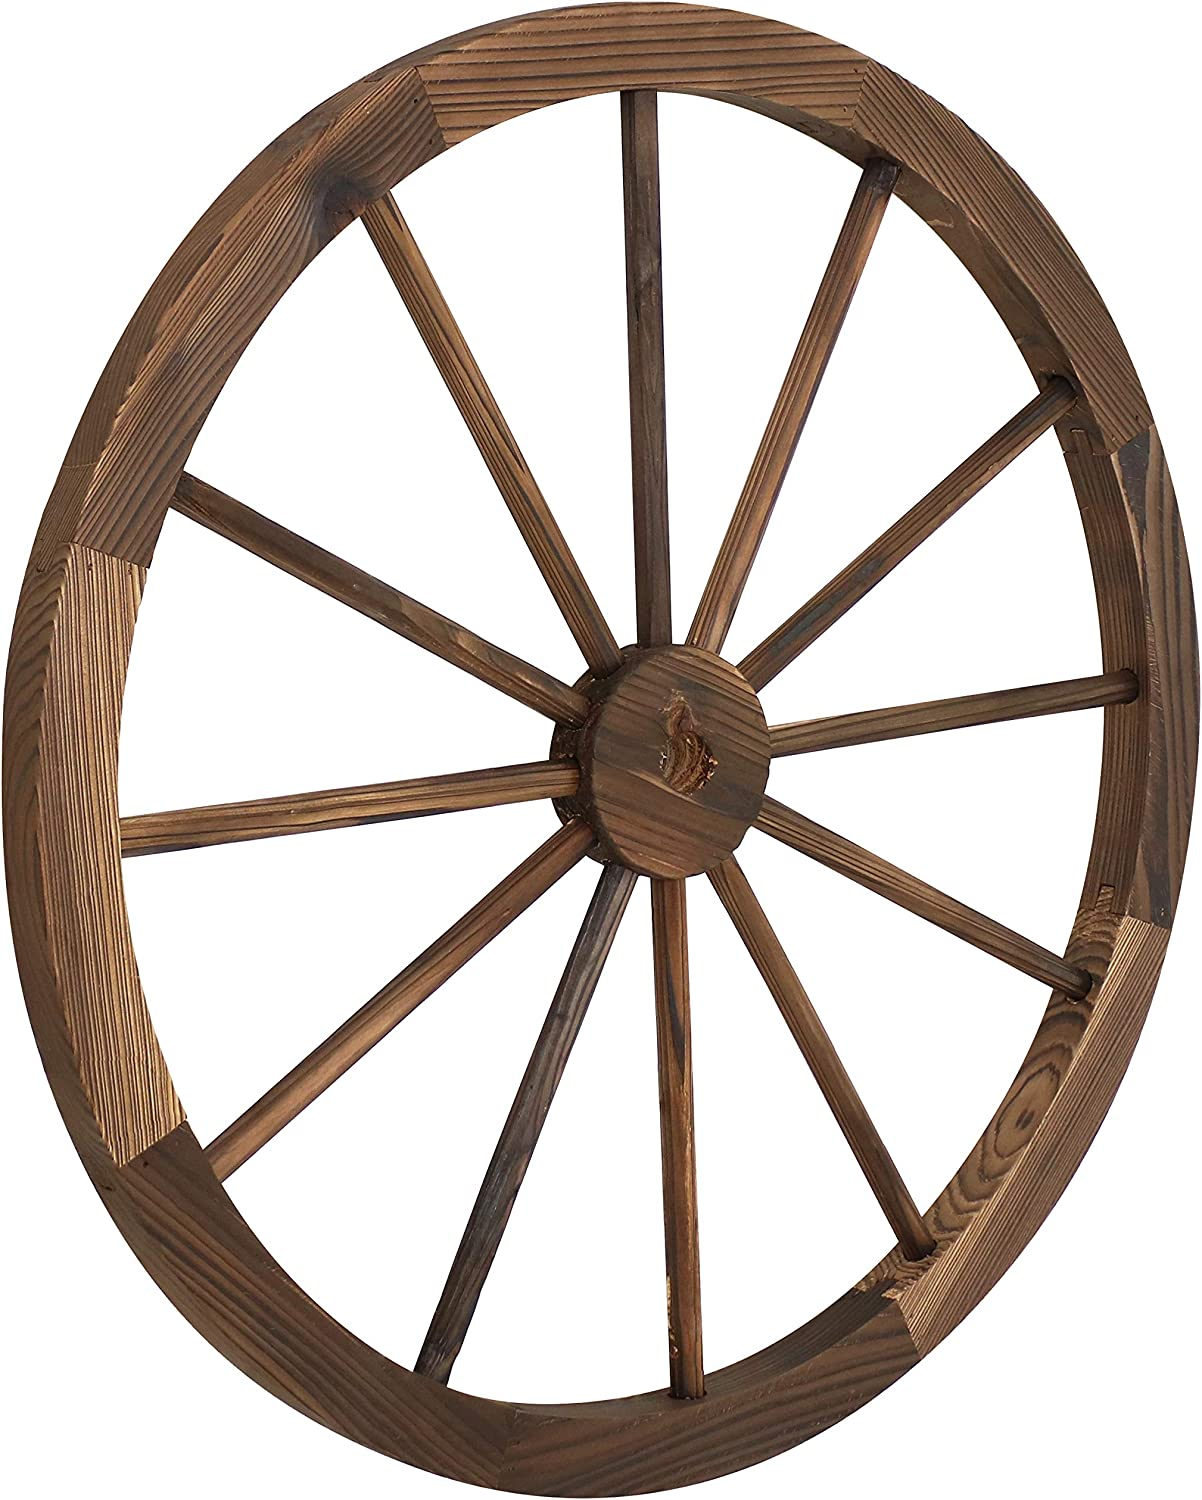 Sunnydaze Decorative Wooden Wagon Wheel - Natural Fir Wood - Rustic Western Indoor and Outdoor Decor - Ideal for Kitchen, Garden, Porch, Patio, Yard and Landscape - 29-Inch - Natural